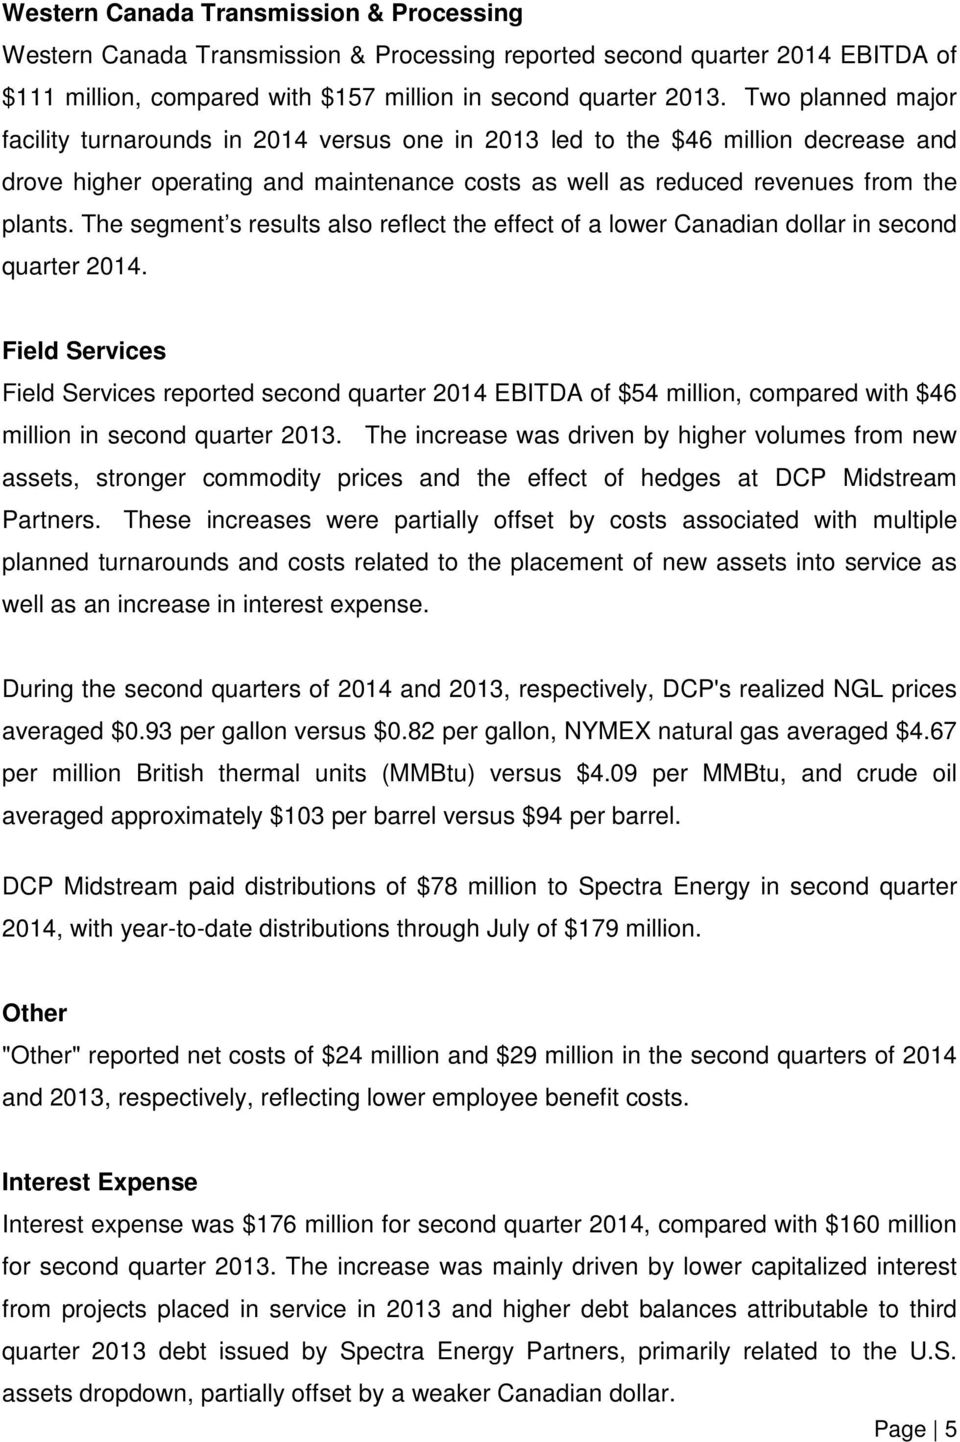 The segment s results also reflect the effect of a lower Canadian dollar in second quarter 2014.